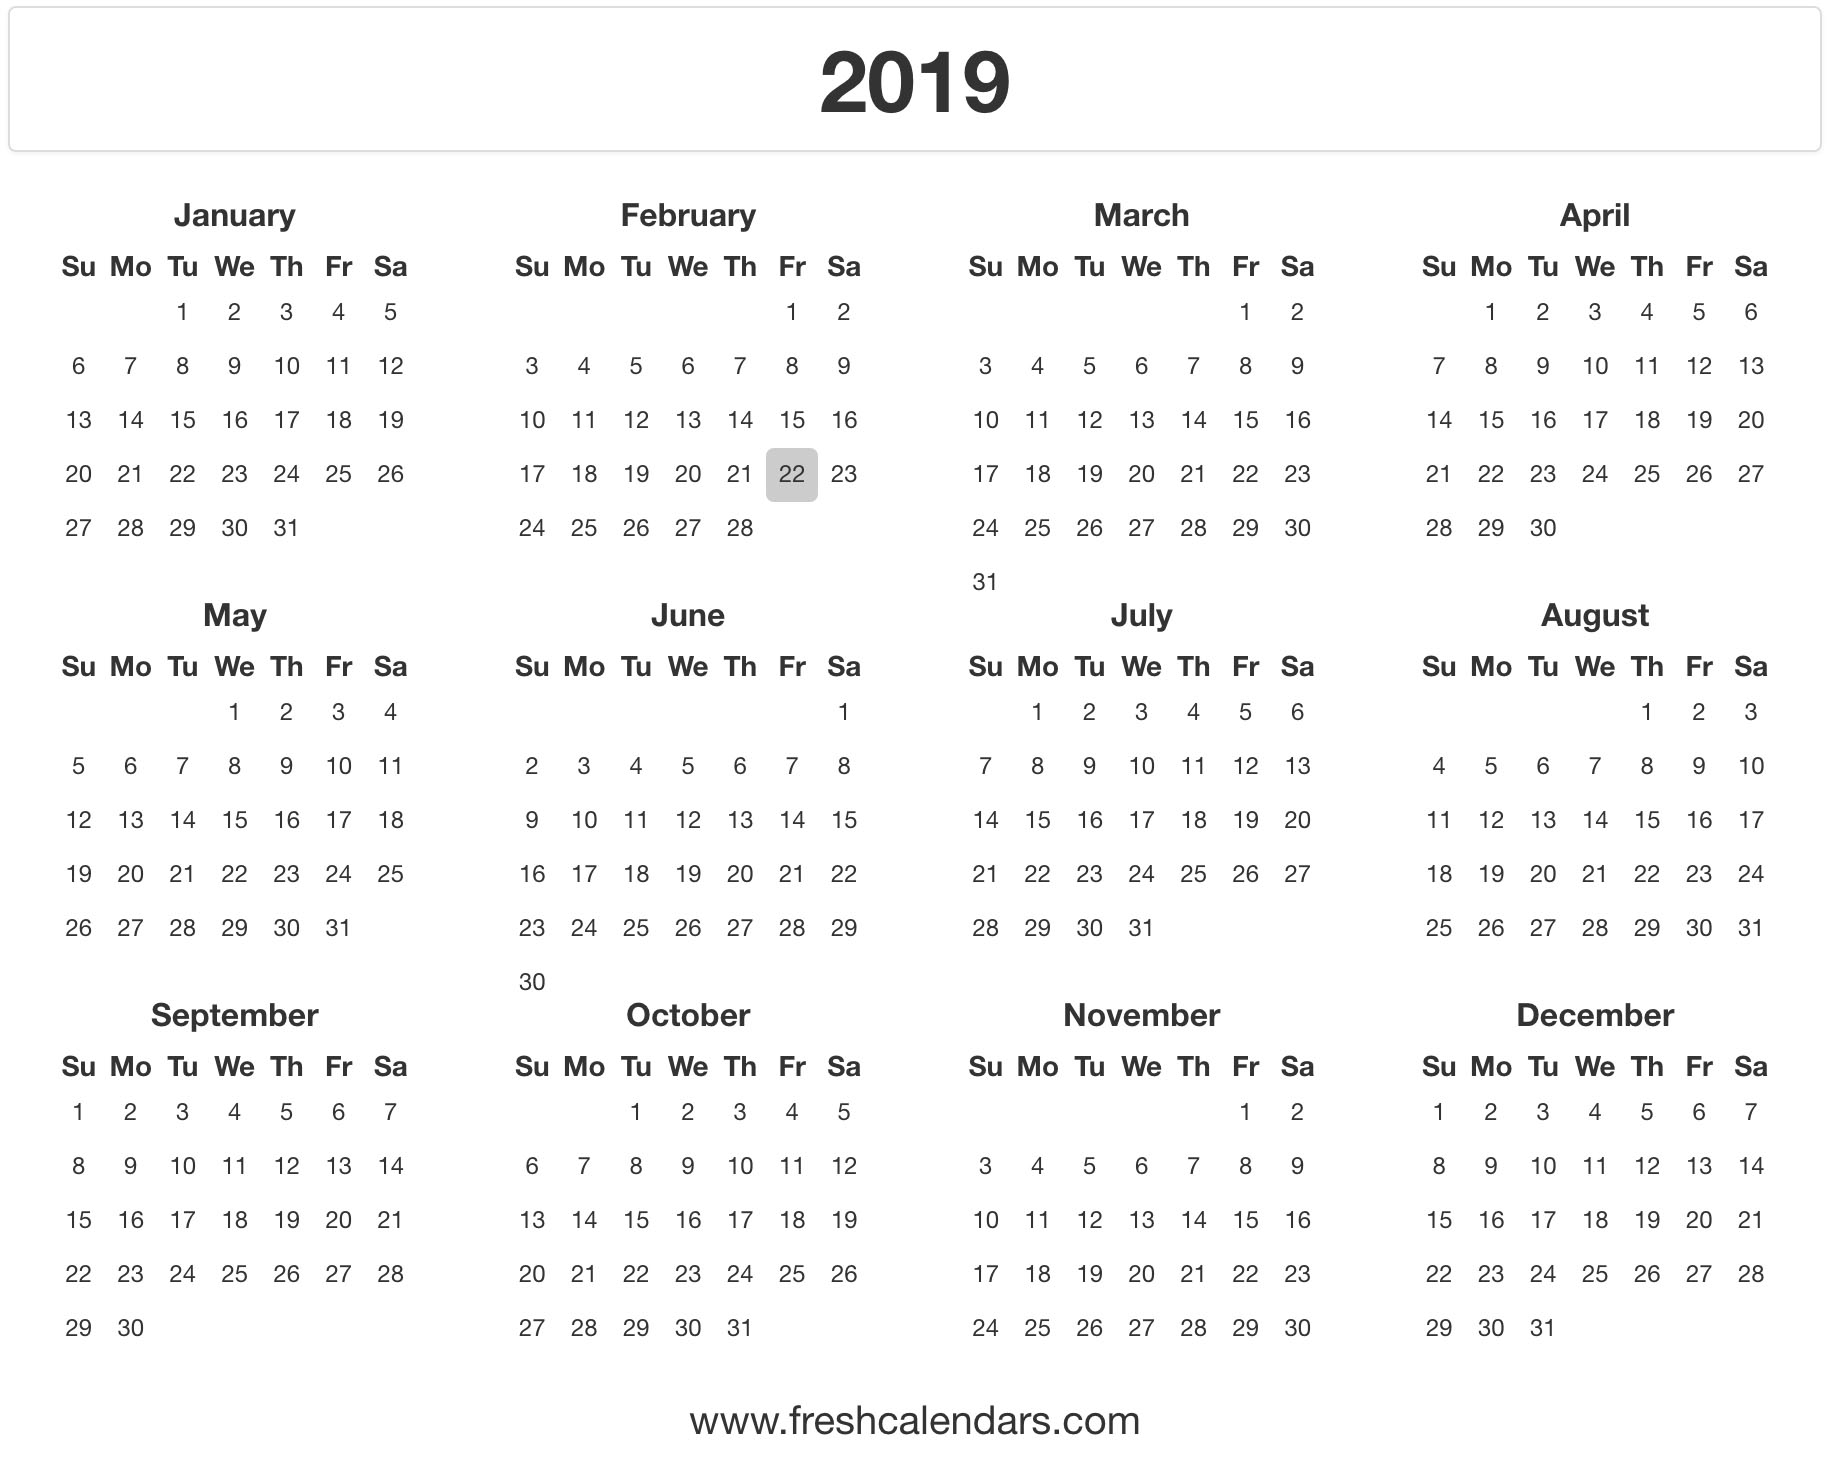 2019 Calendar with Printable Calendars July 2019 To June 2020